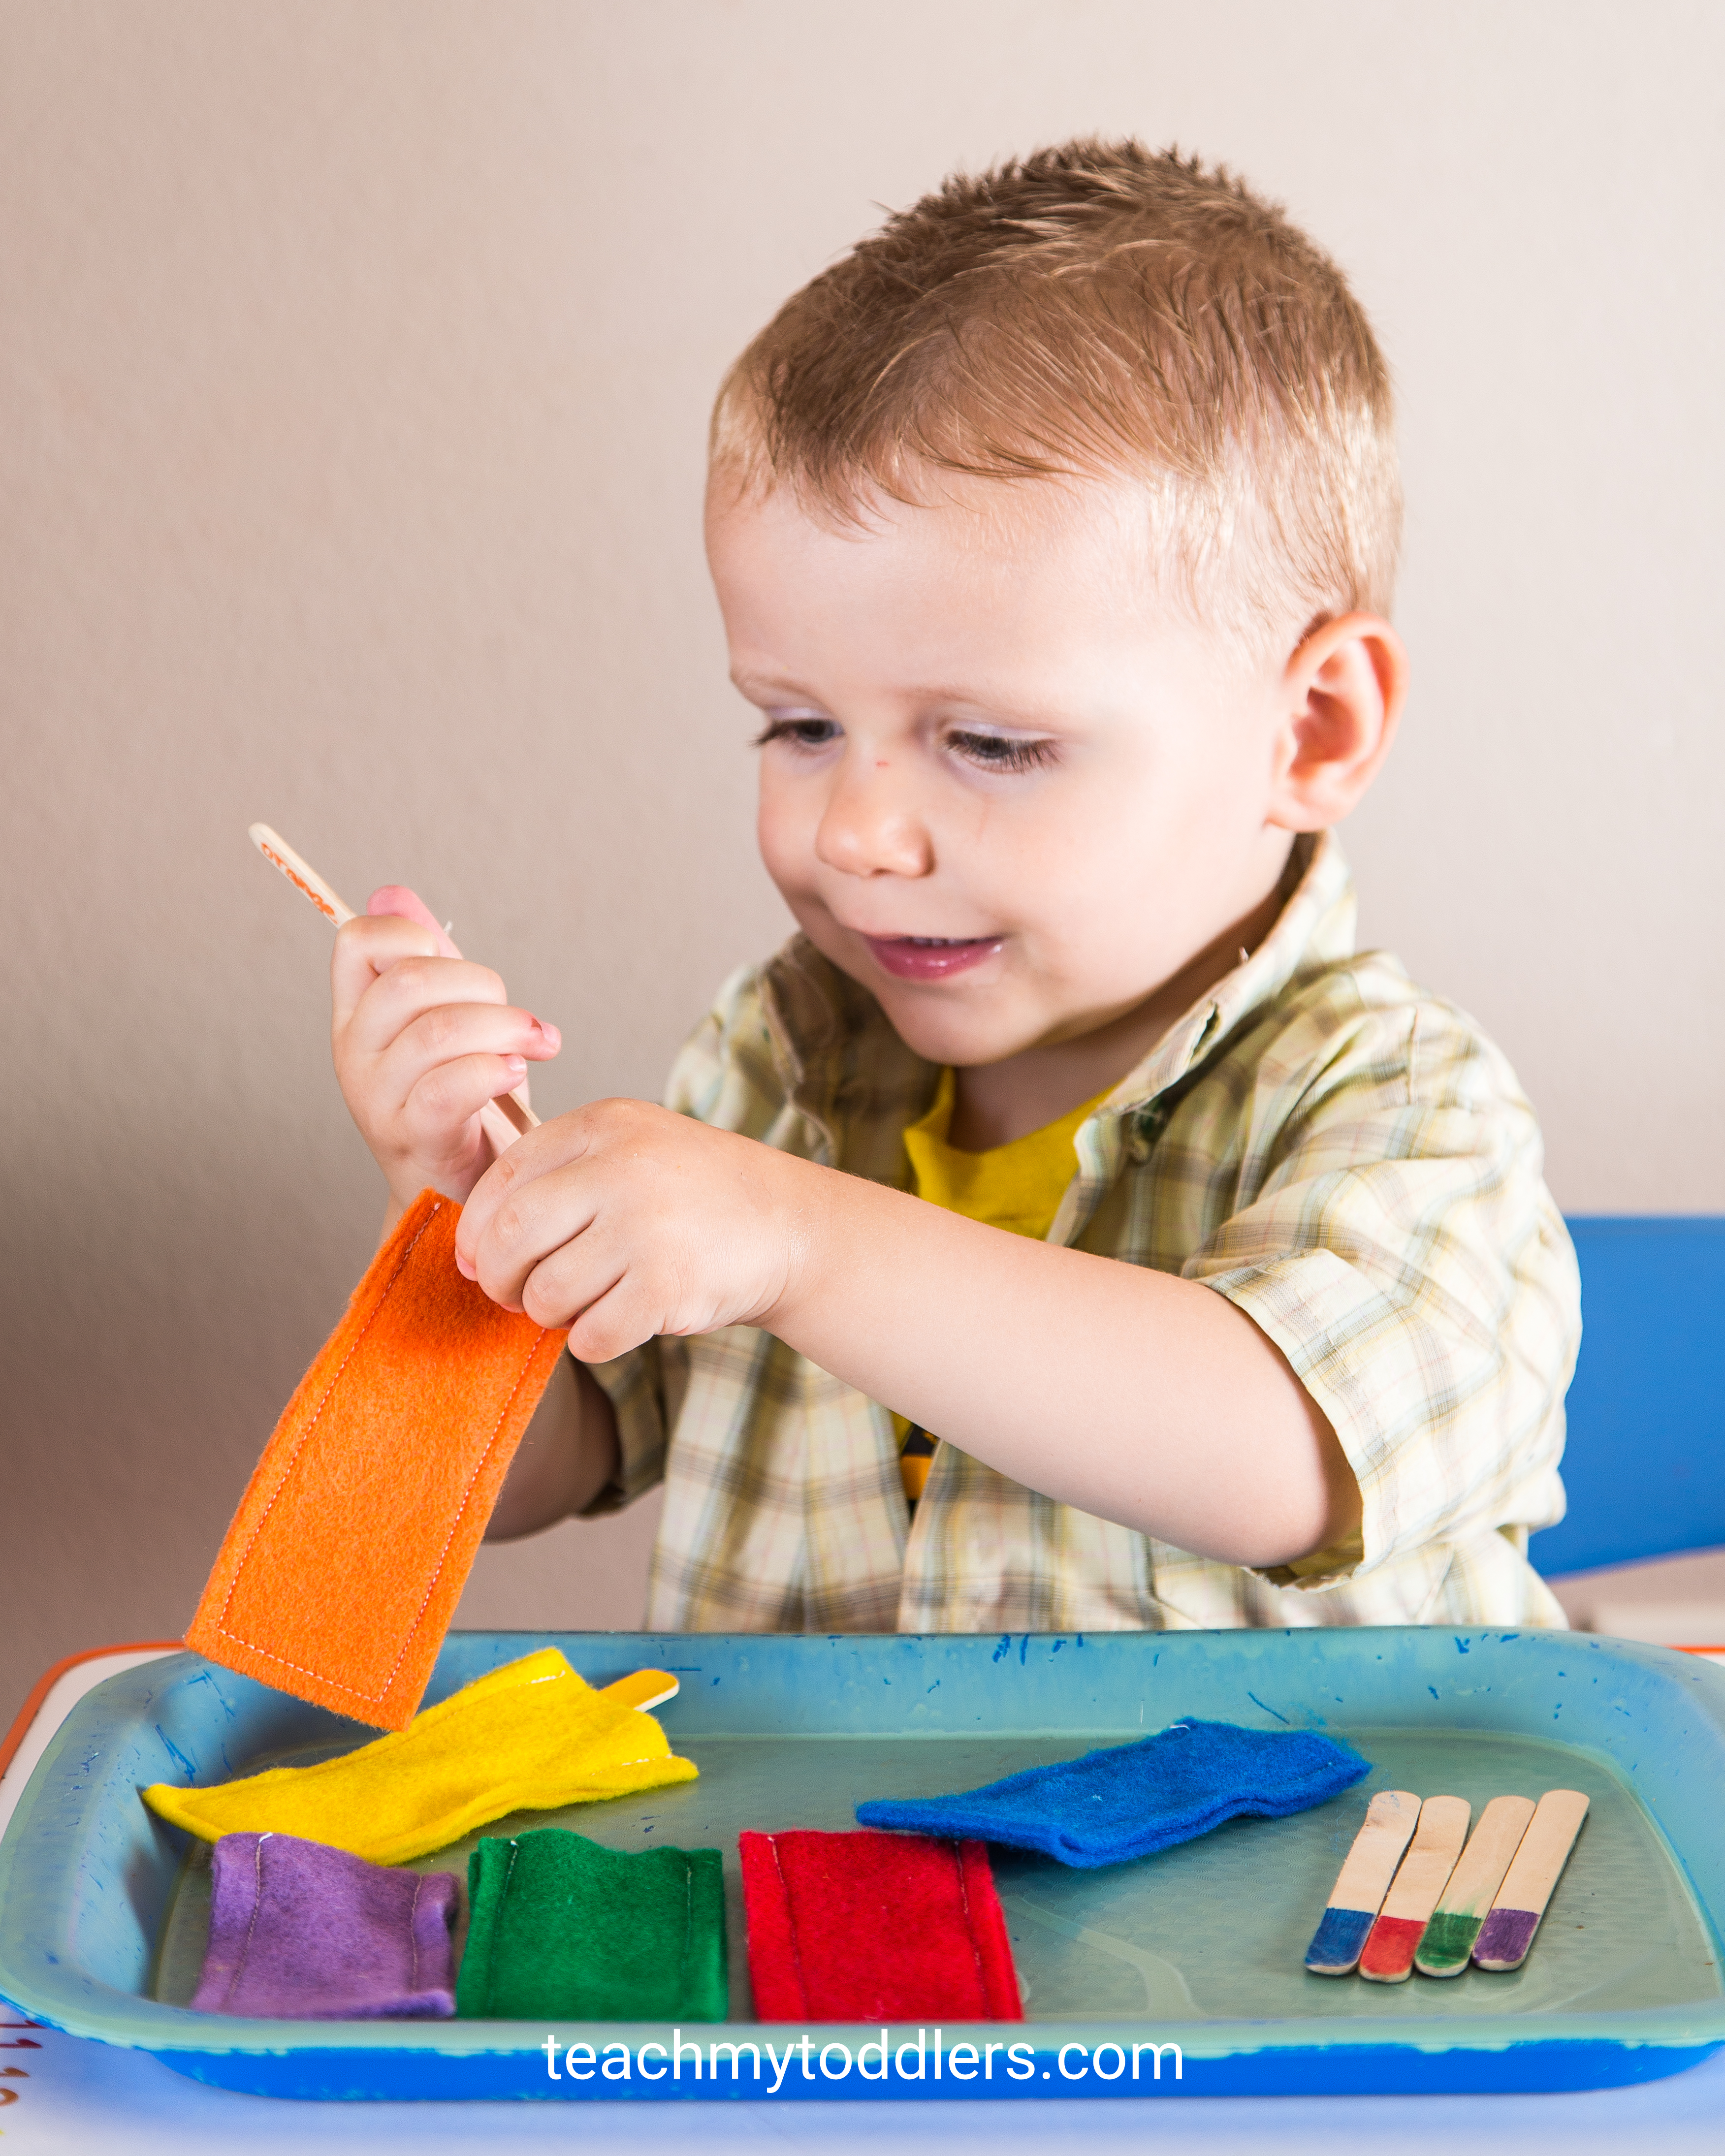 Teach your toddlers colors with this fun activity